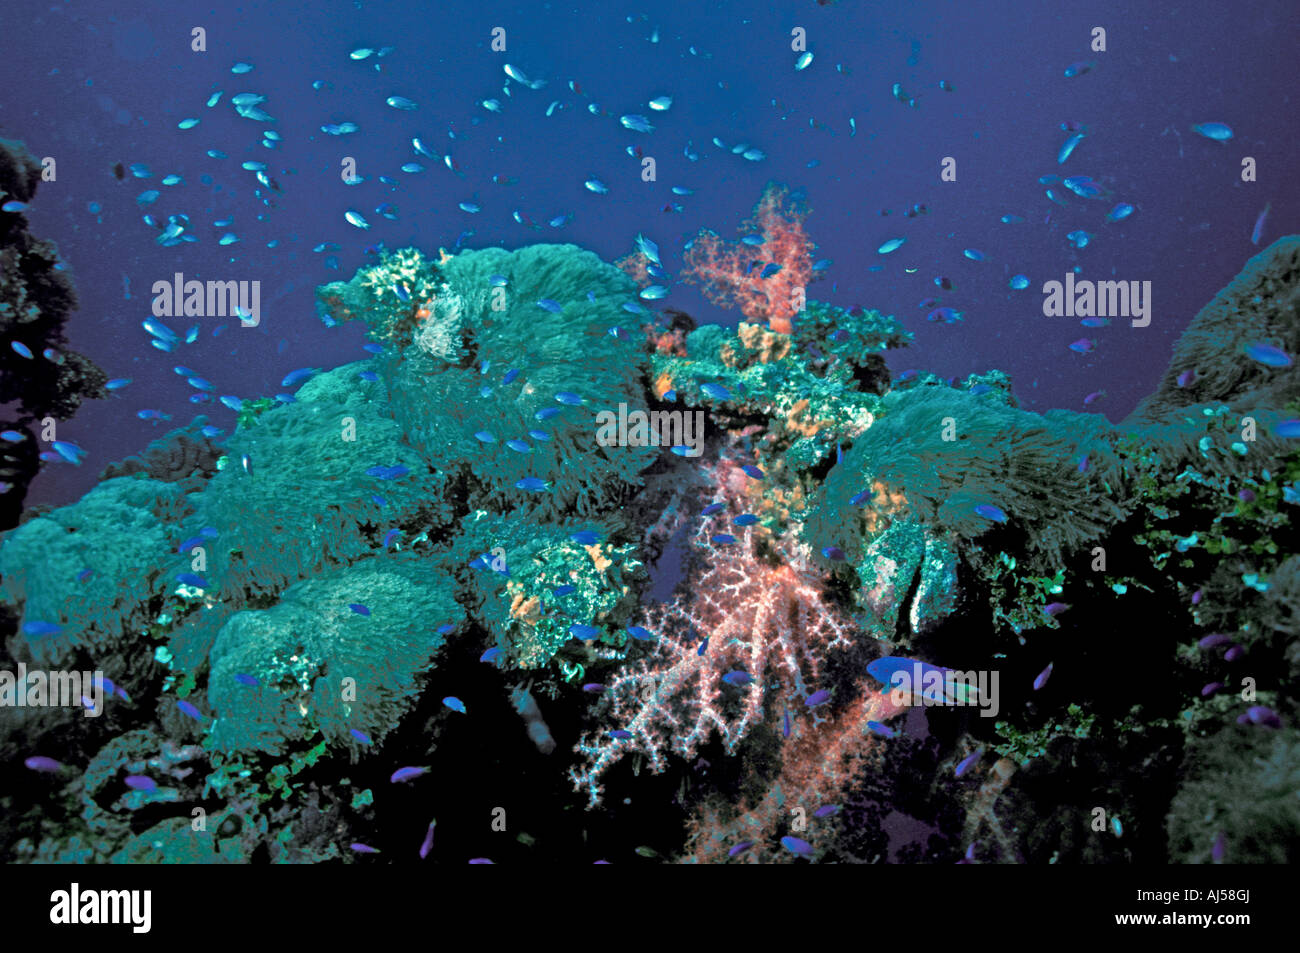 Stock photo coral reef red soft corals fish coral tentacles truk lagoon sport scuba diving underwater scenic landscape chuuk islands federat